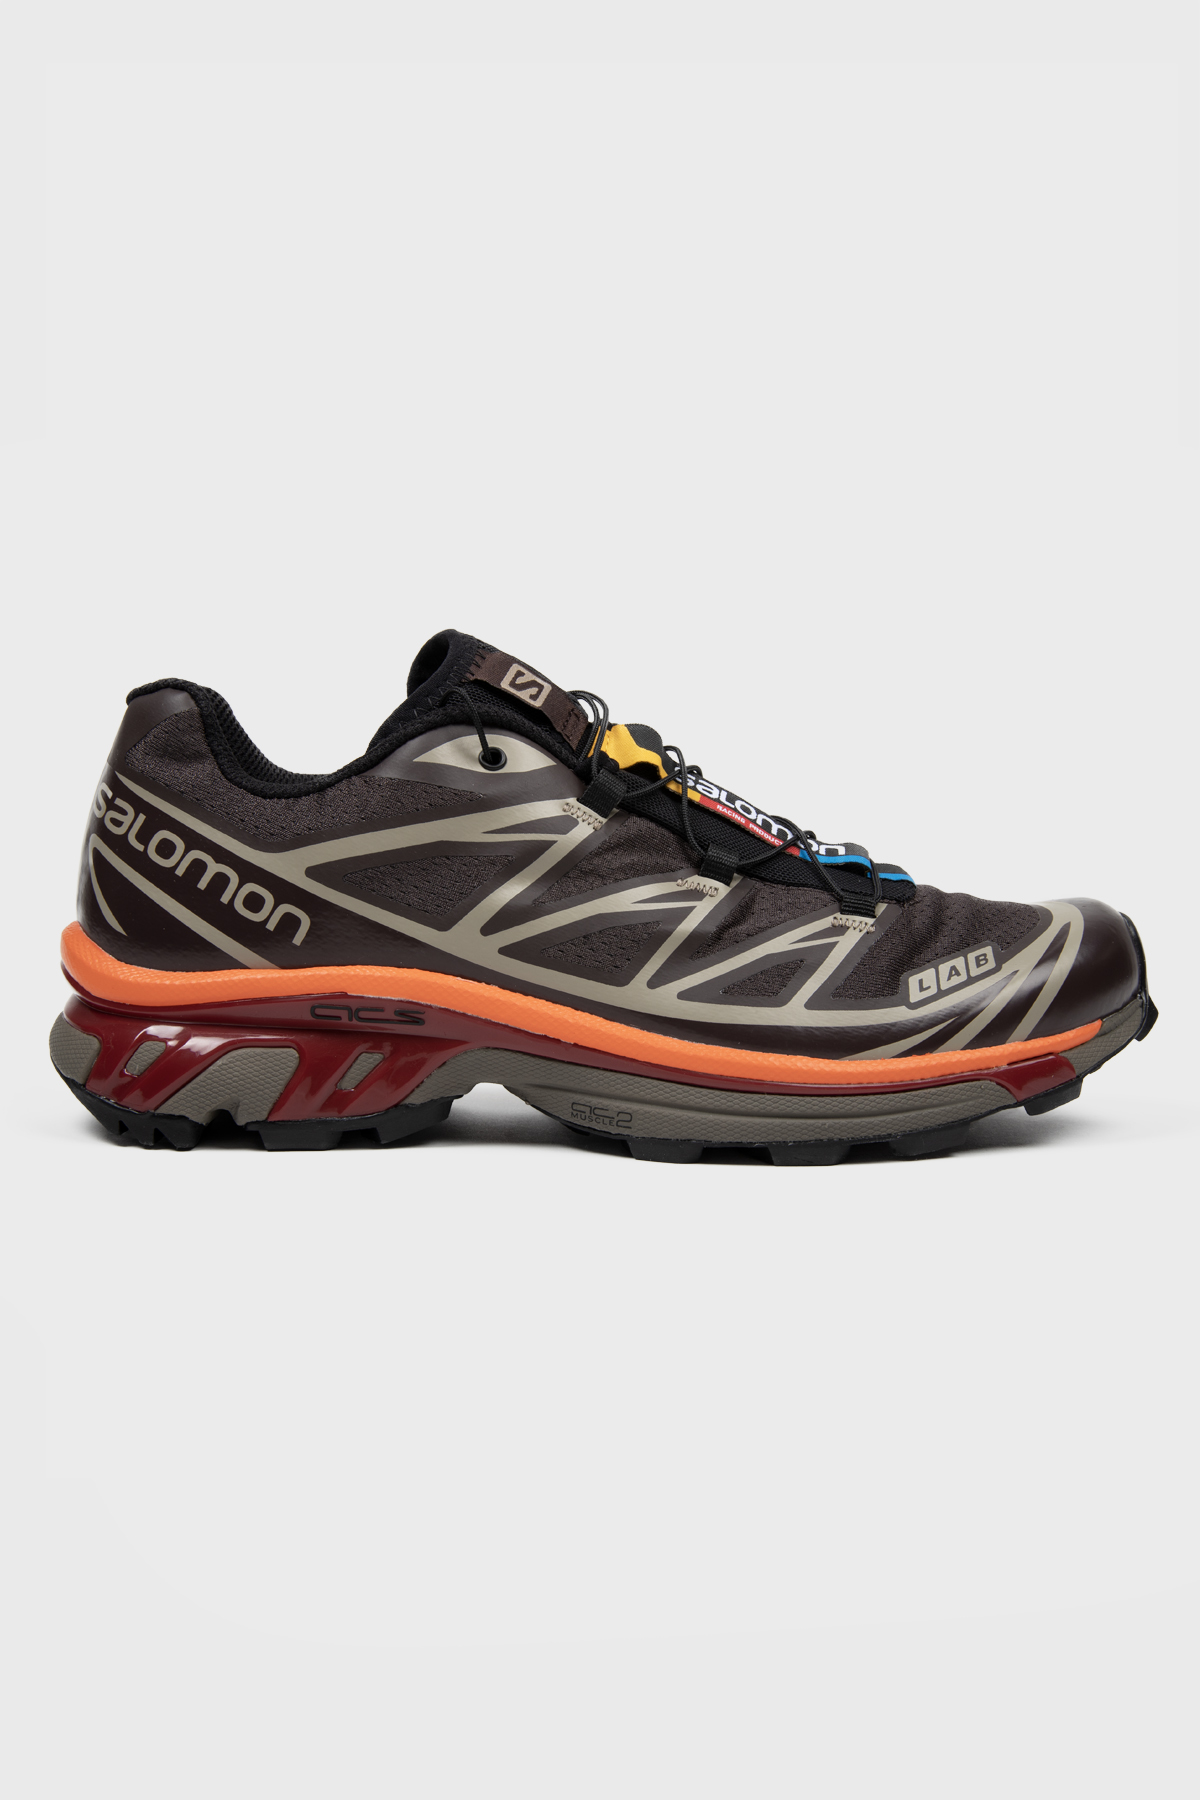 Salomon - S/LAB XT-6 ADV - Shale Chocolate plum red orange